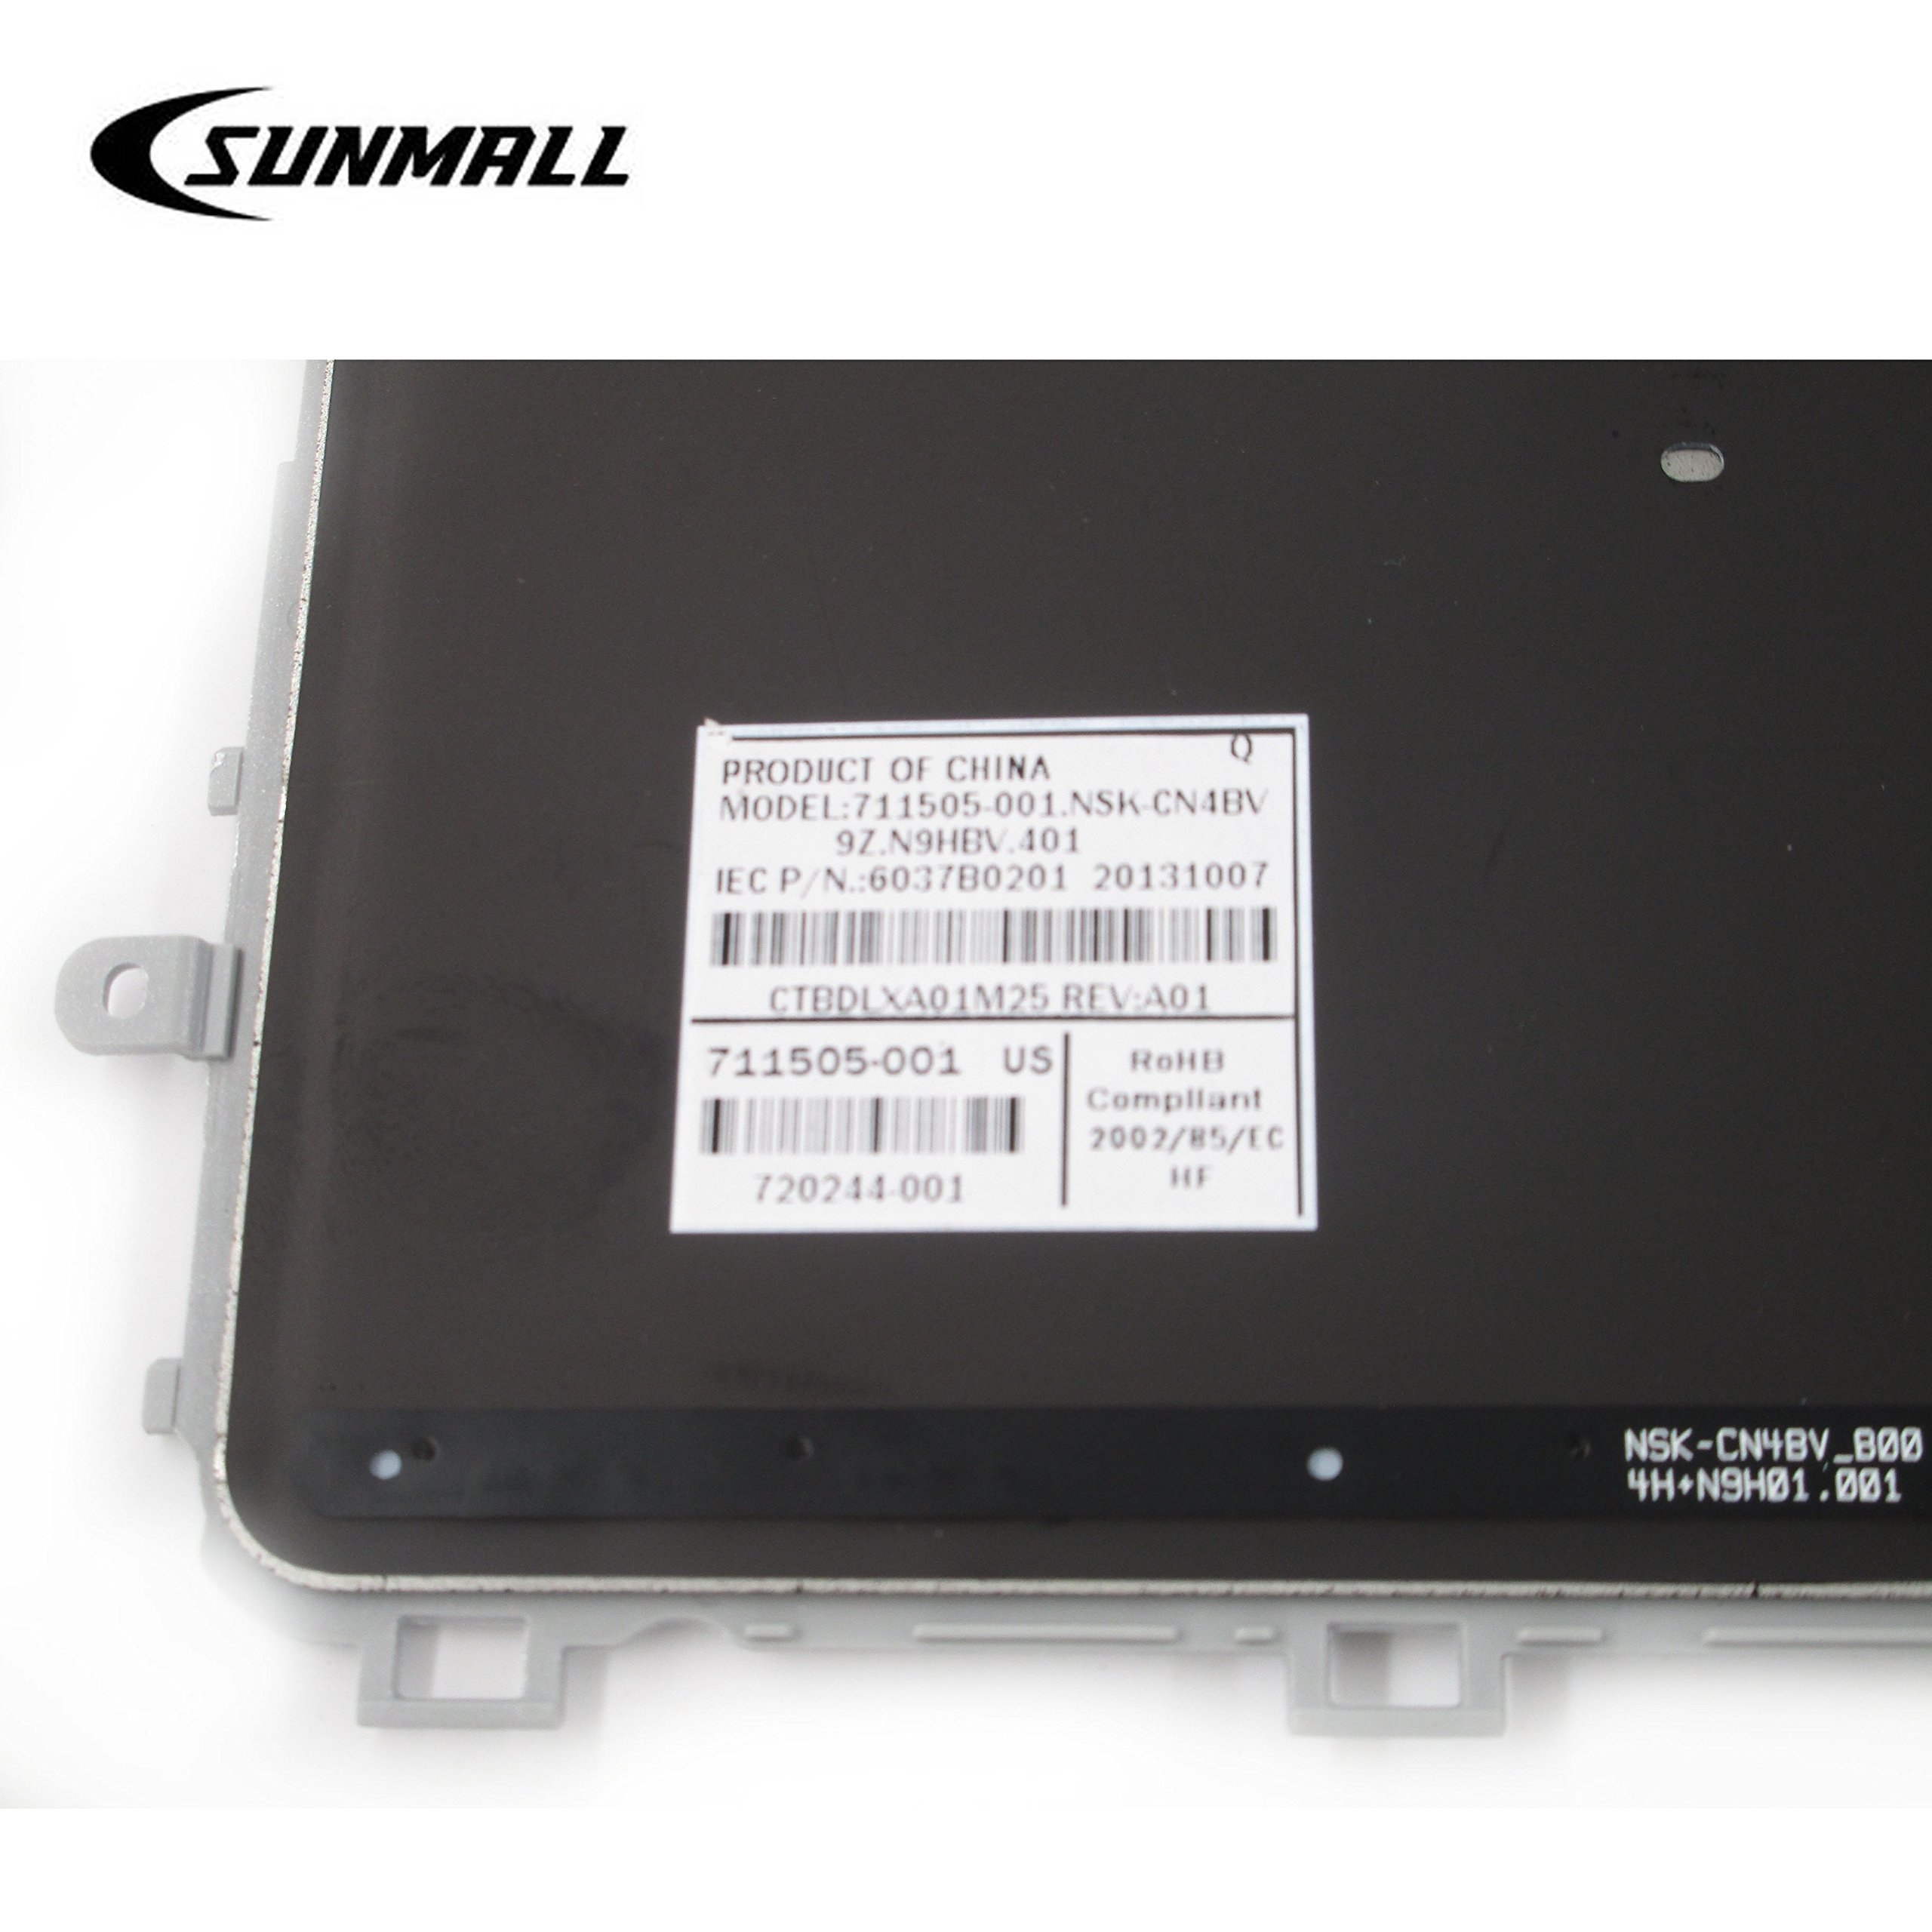 EJTONG New for HP Envy Touchsmart M6-N M6-N000 M6-N100 M6-N010DX M6-N015DX M6-N012DX M6-N113DX M6-N168CA M7-J010DX M7-J078CA M7-J120DX M7-J178CA Laptop Silver US Keyboard with Backlit